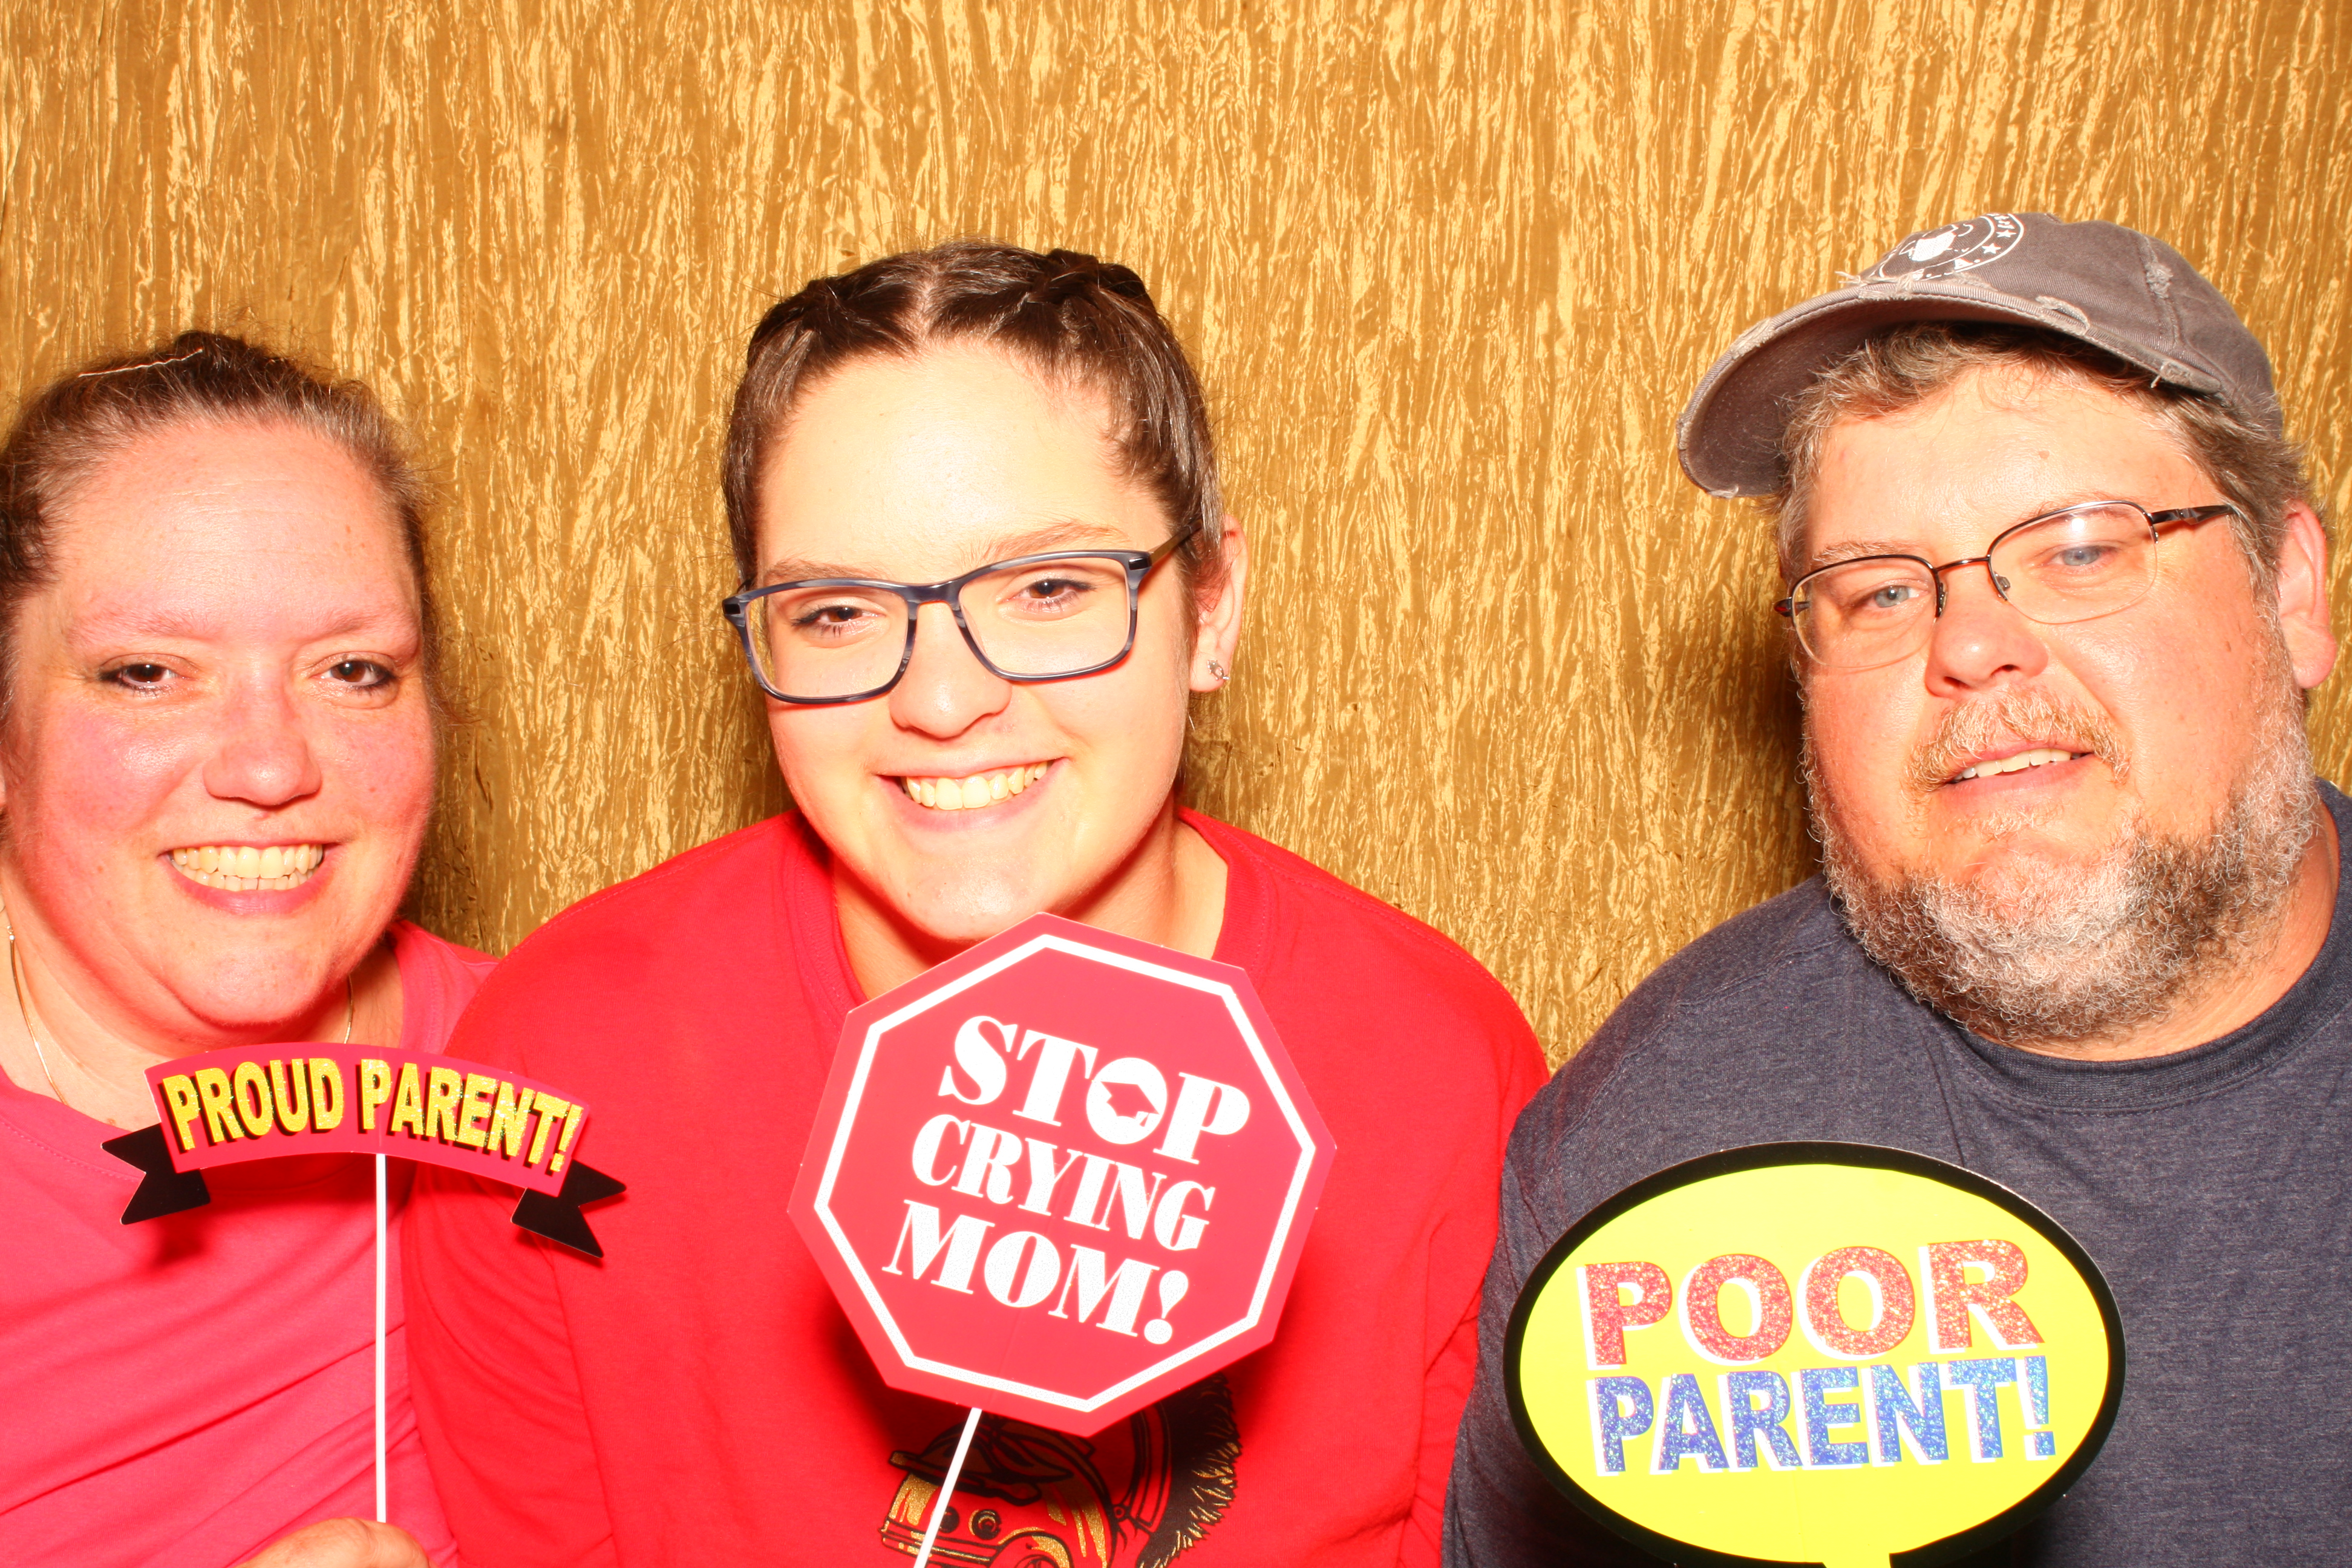 photobooth picture at a graduation party